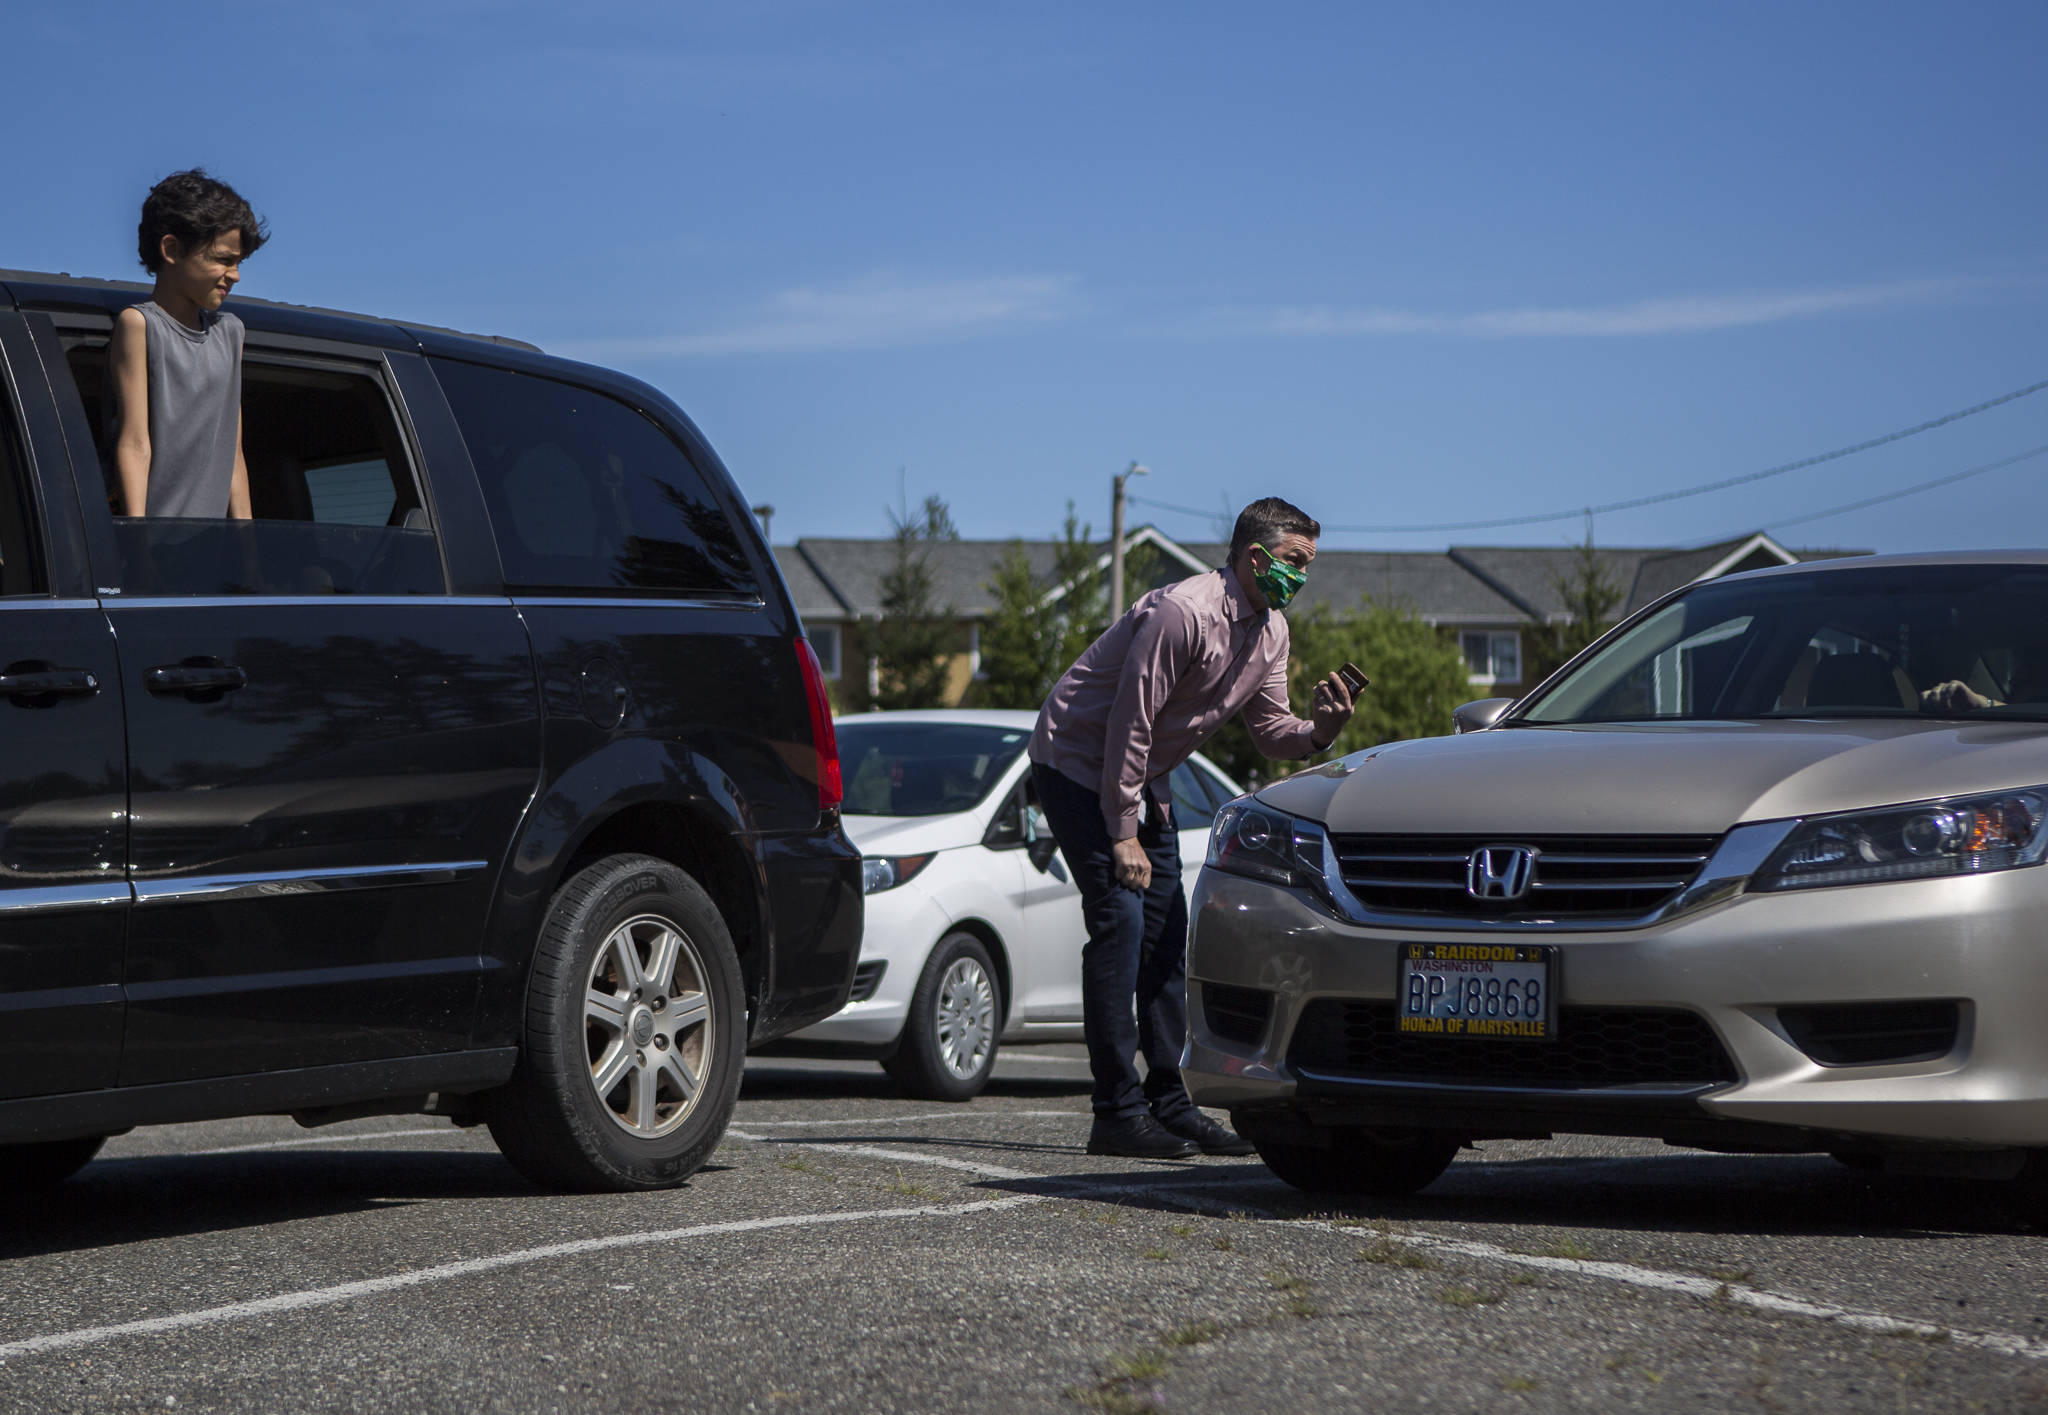 Pastor Aaron Thompson checks in to make sure everyone is connected to the wifi from the parking lot before his service at Marysville Foursquare Gospel Church on Sunday. (Olivia Vanni / The Herald)